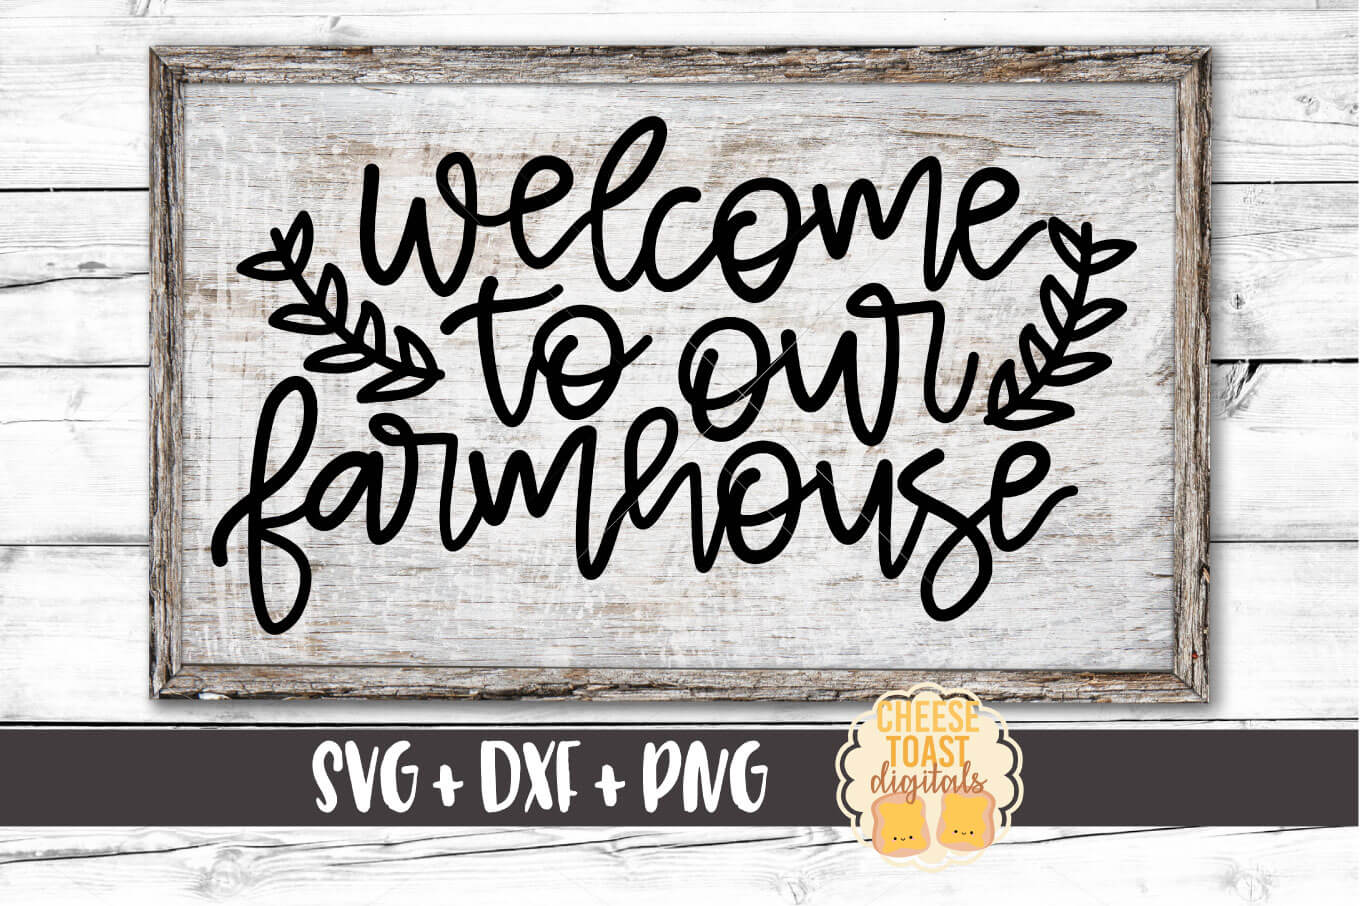 Welcome To Our Farmhouse - SVG, PNG, DXF